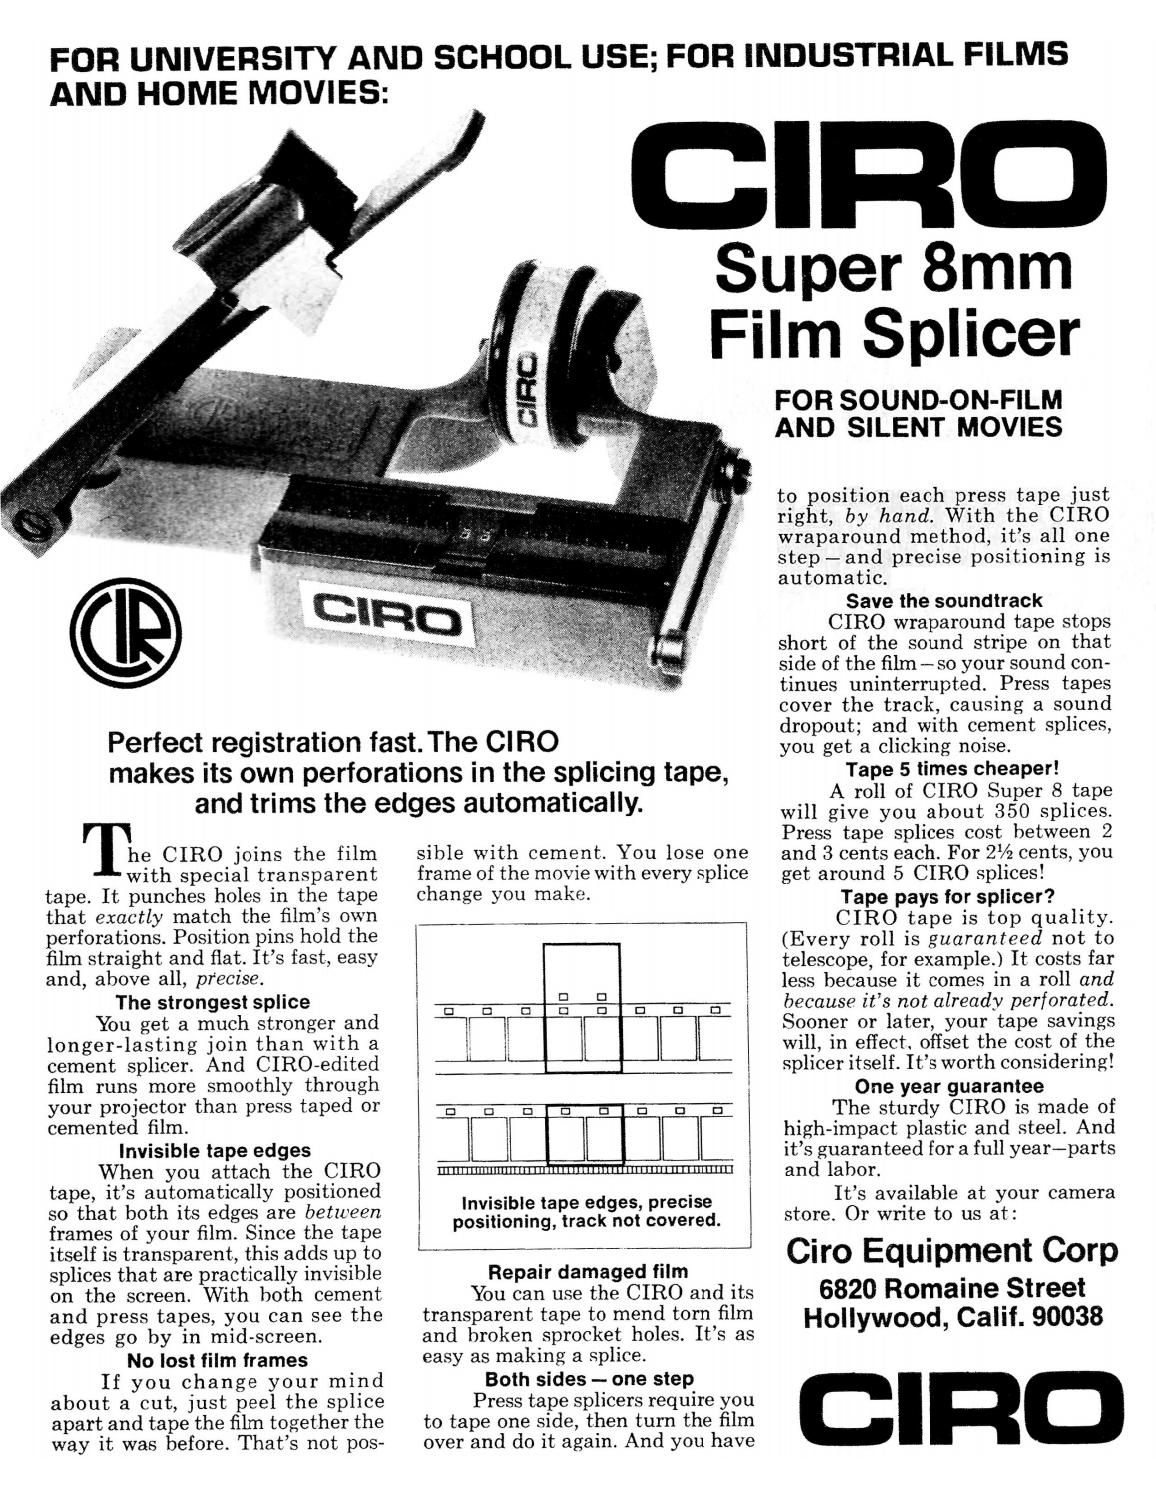 Ciro Super 8mm Film Splicer Quick Instructions 3 Pages by